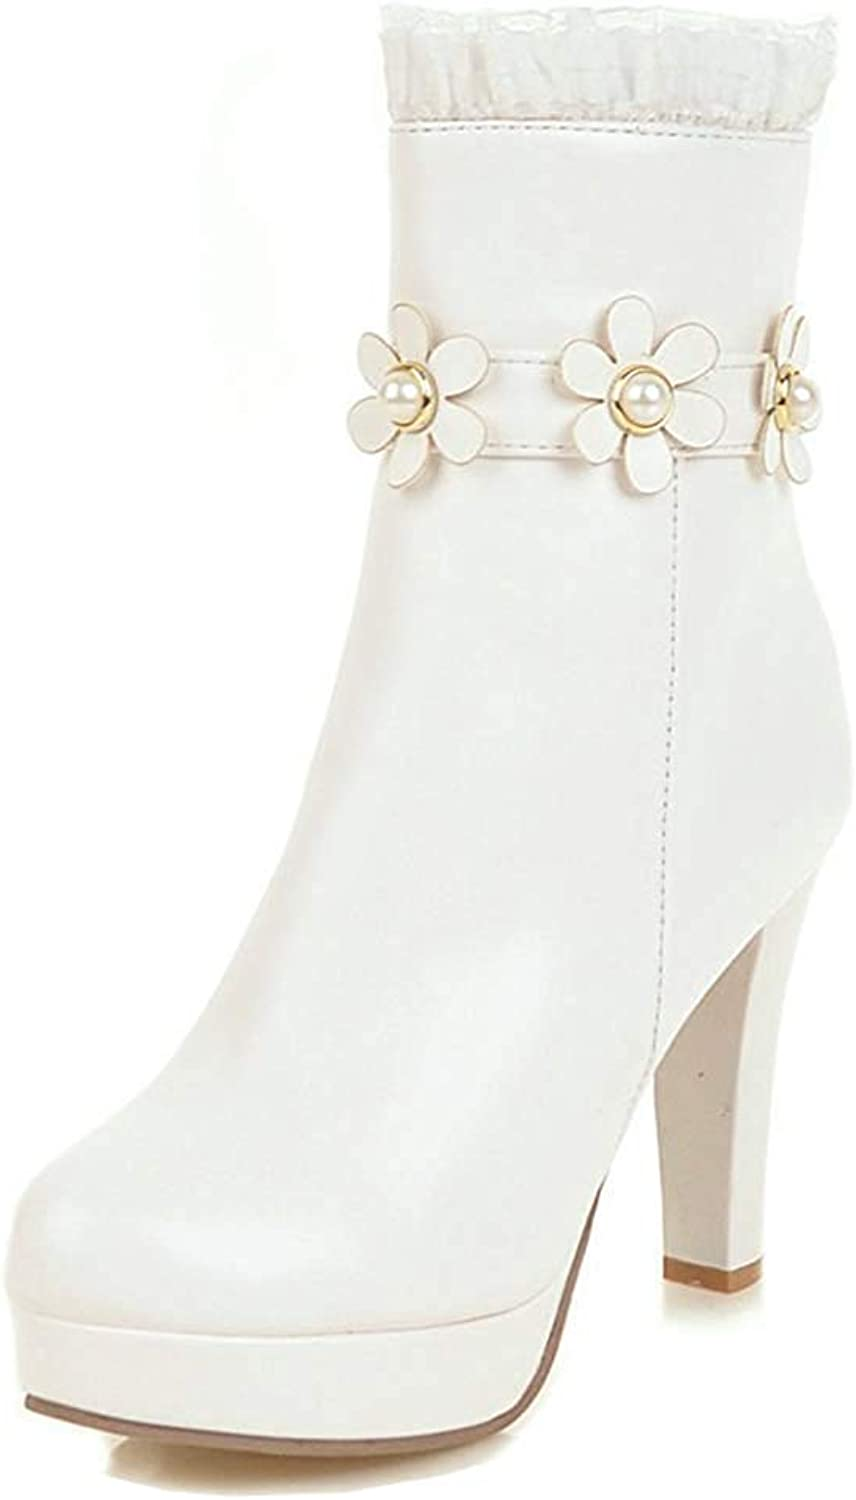 Unm Women's Cute Laces Flower High Heeled Ankle Boots Round Toe Platform Short Booties Zipper